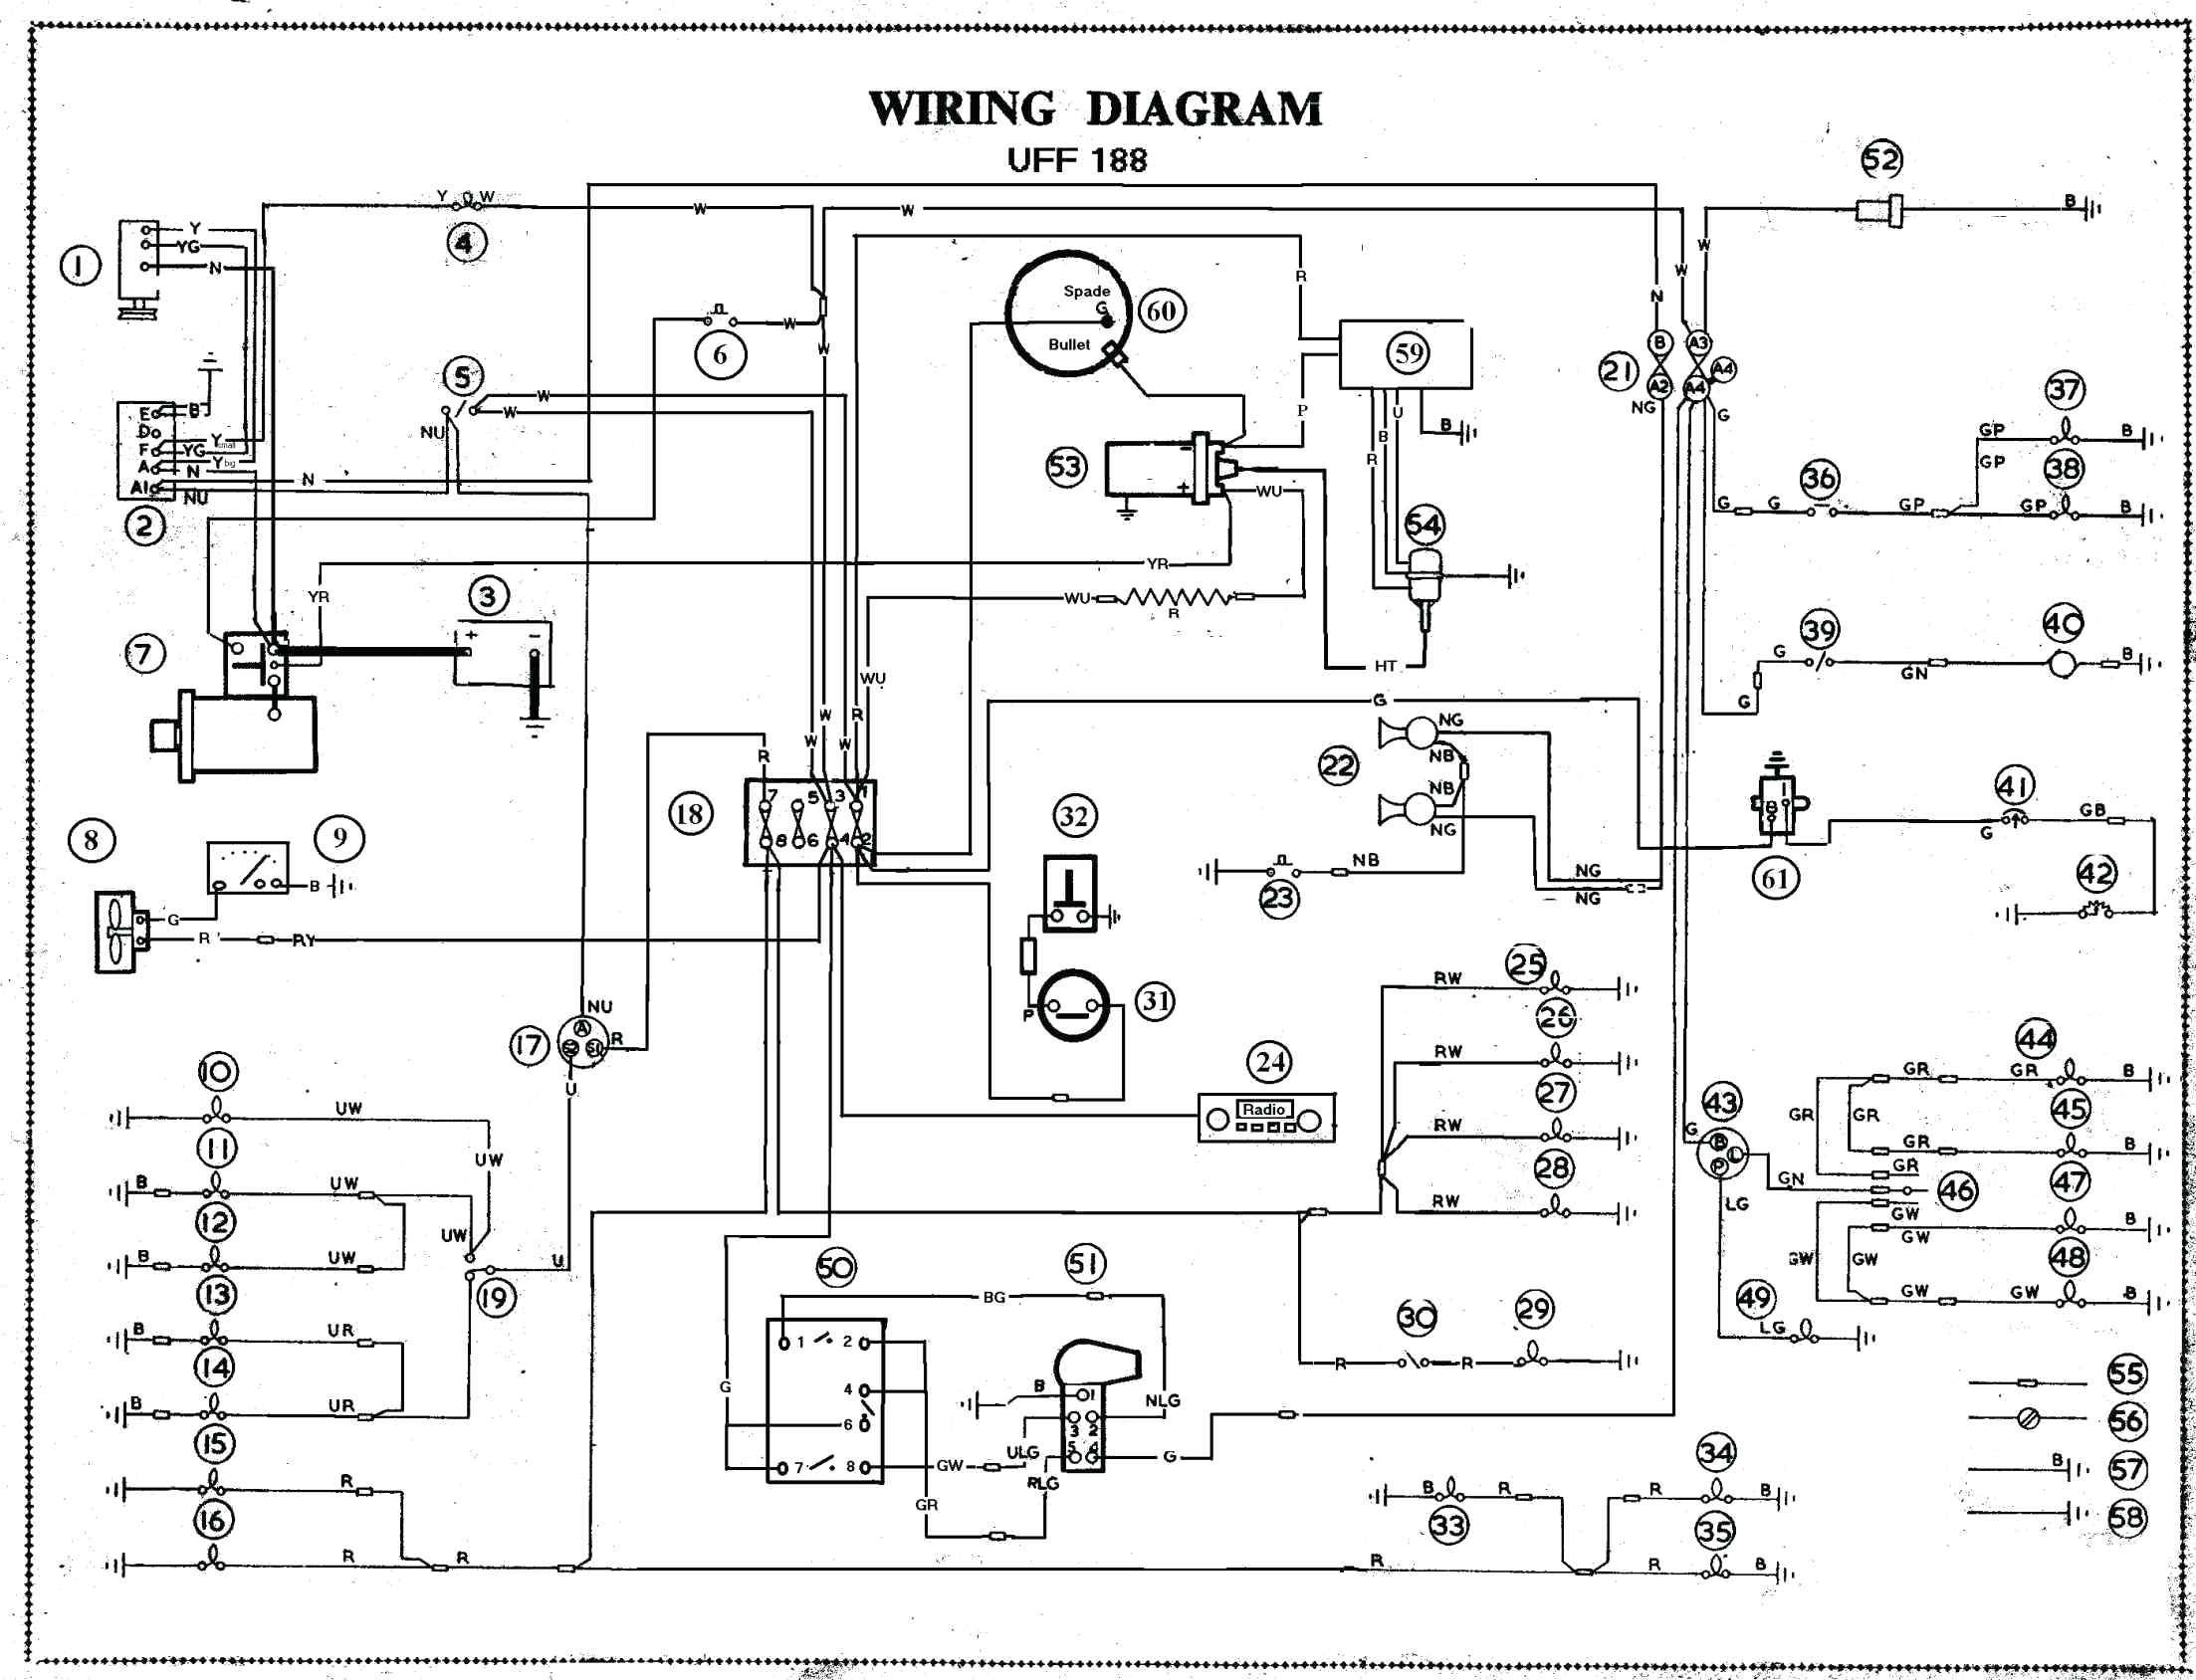 Rc Aircraft Wiring Diagrams Simple Wiring Diagram Detailed Car Radio Wire  Diagrams Car Wire Diagram Tv